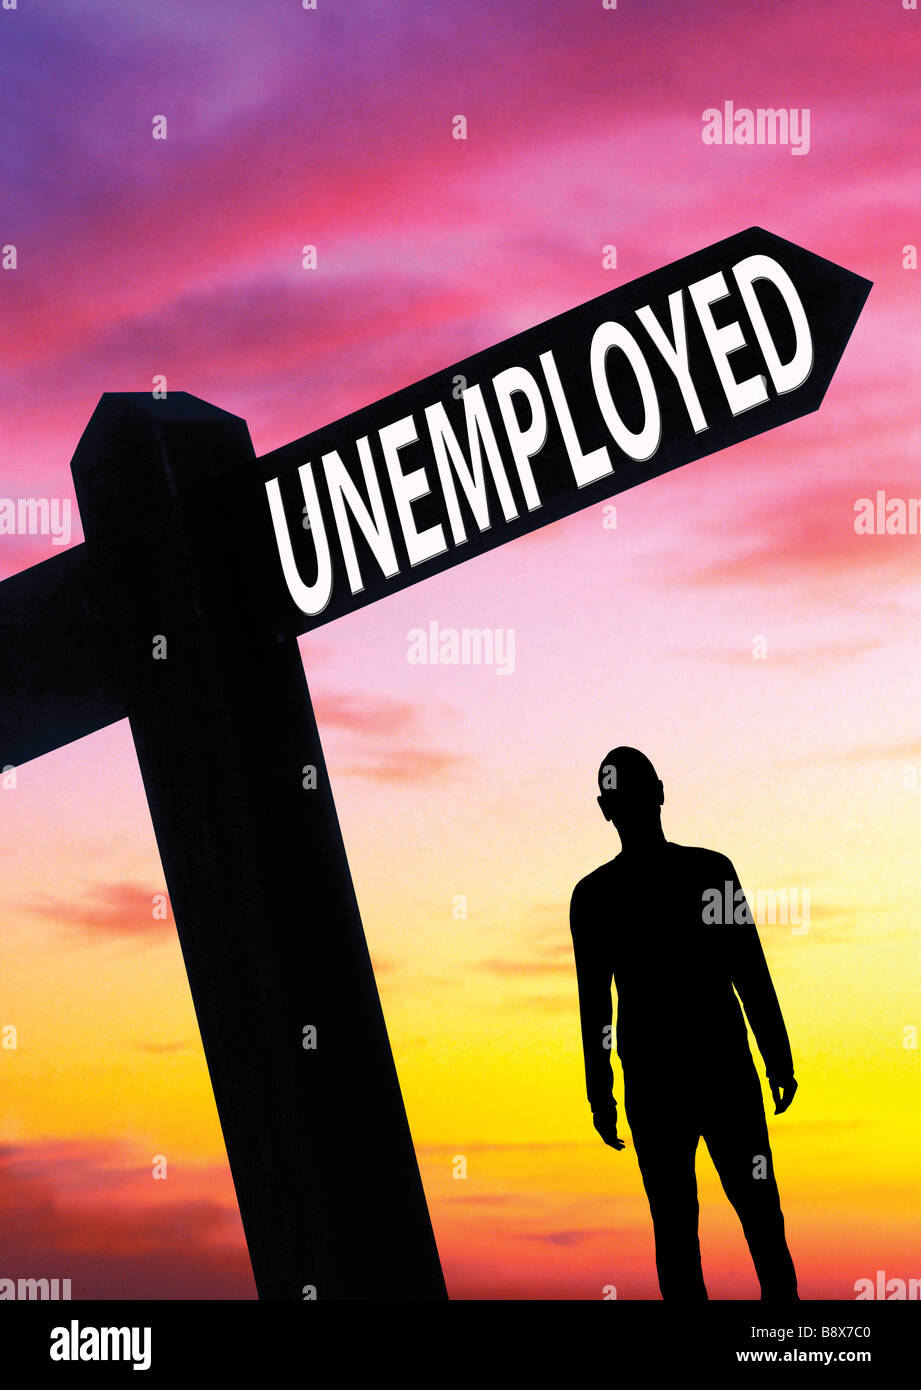 unemployed man Unemployment concept - Stock Image